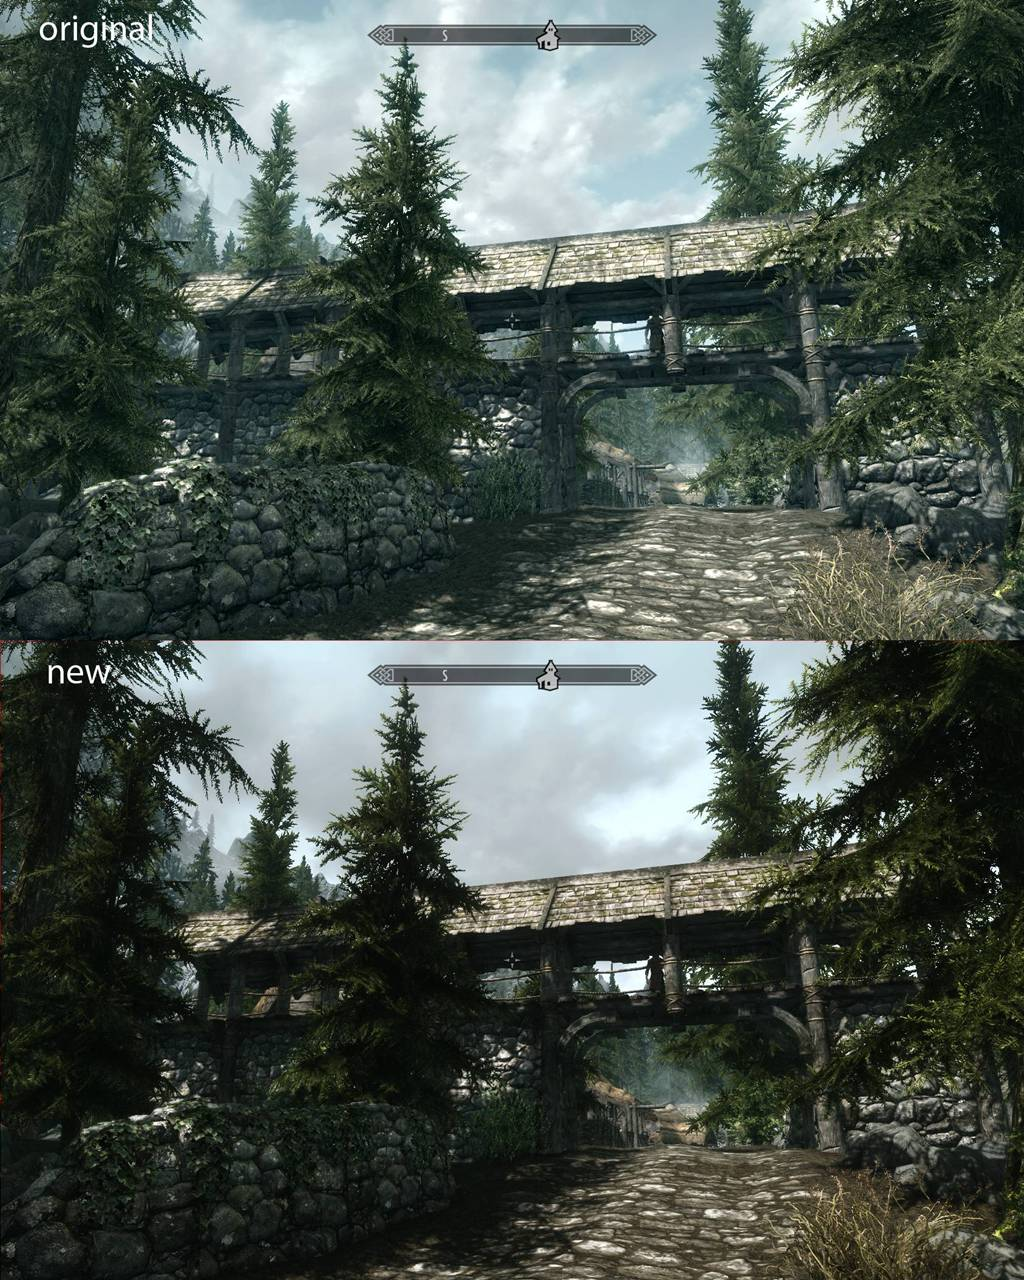 Skyrim Mod Comparison screen 1 Skyrim Mod Comparison screen 2 ... & New Skyrim Mod completely transforms the game